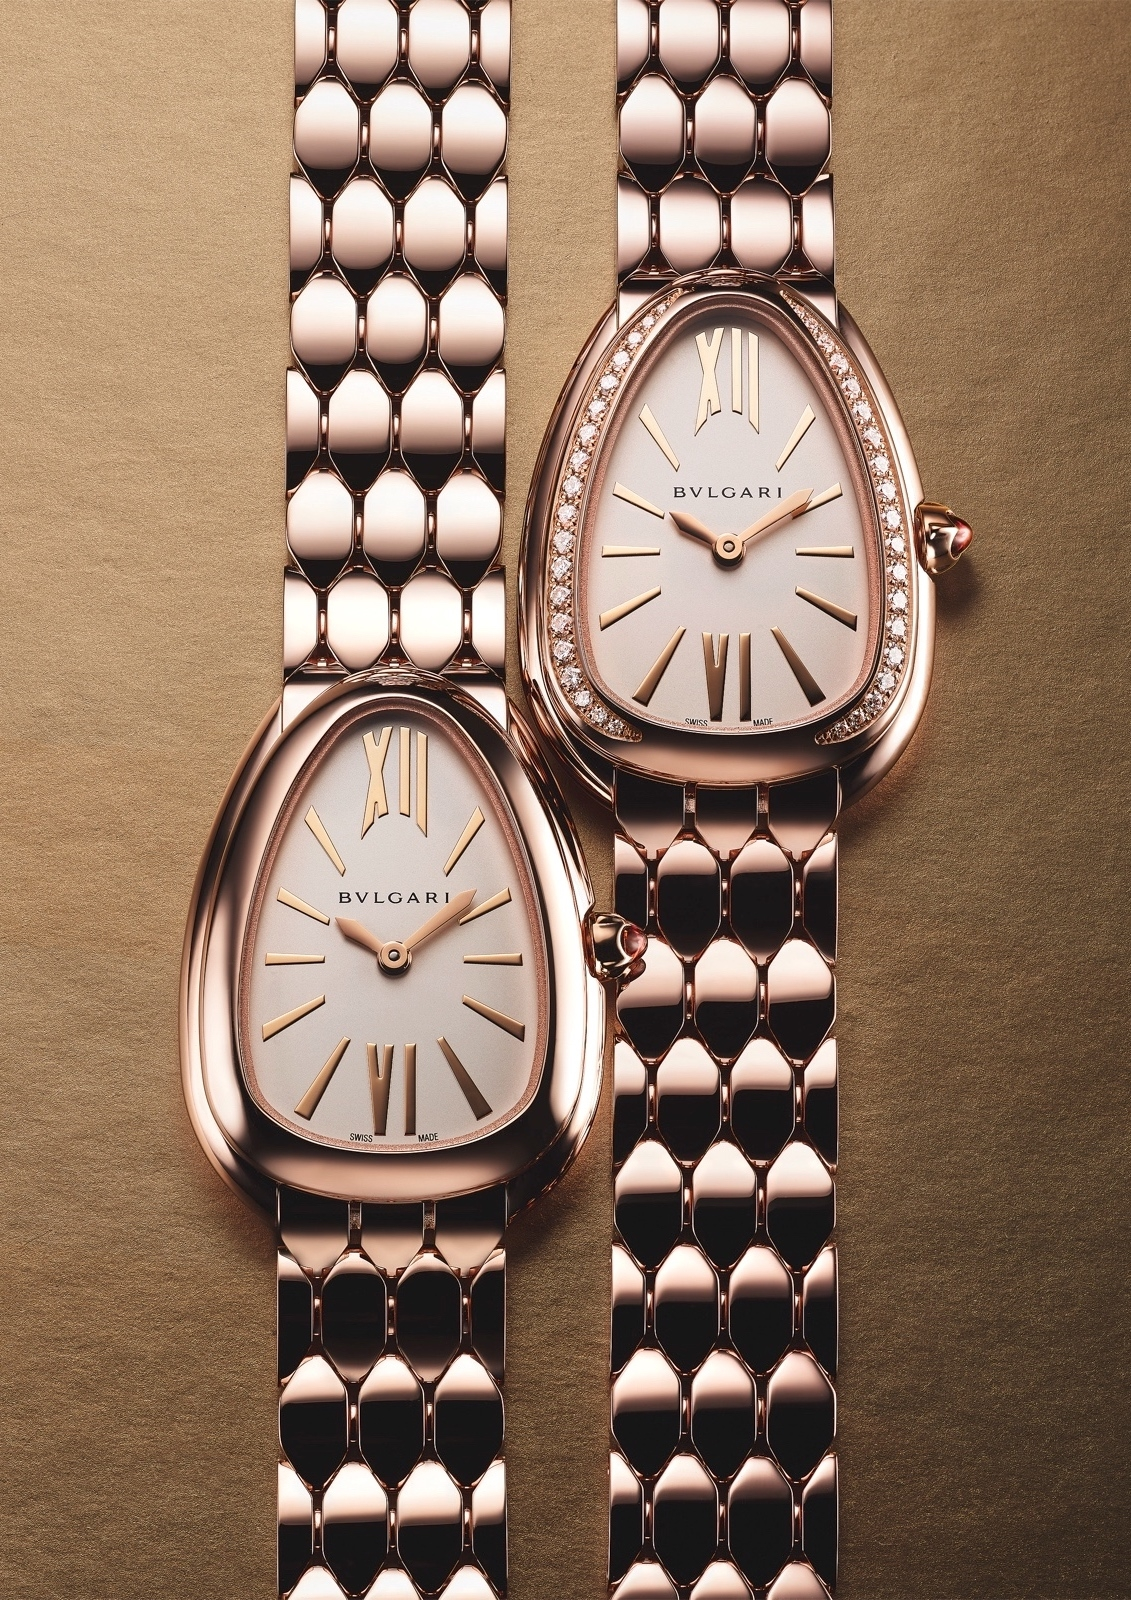 Bulgari en Baselworld 2019 - Serpenti Seduttori rose gold duo